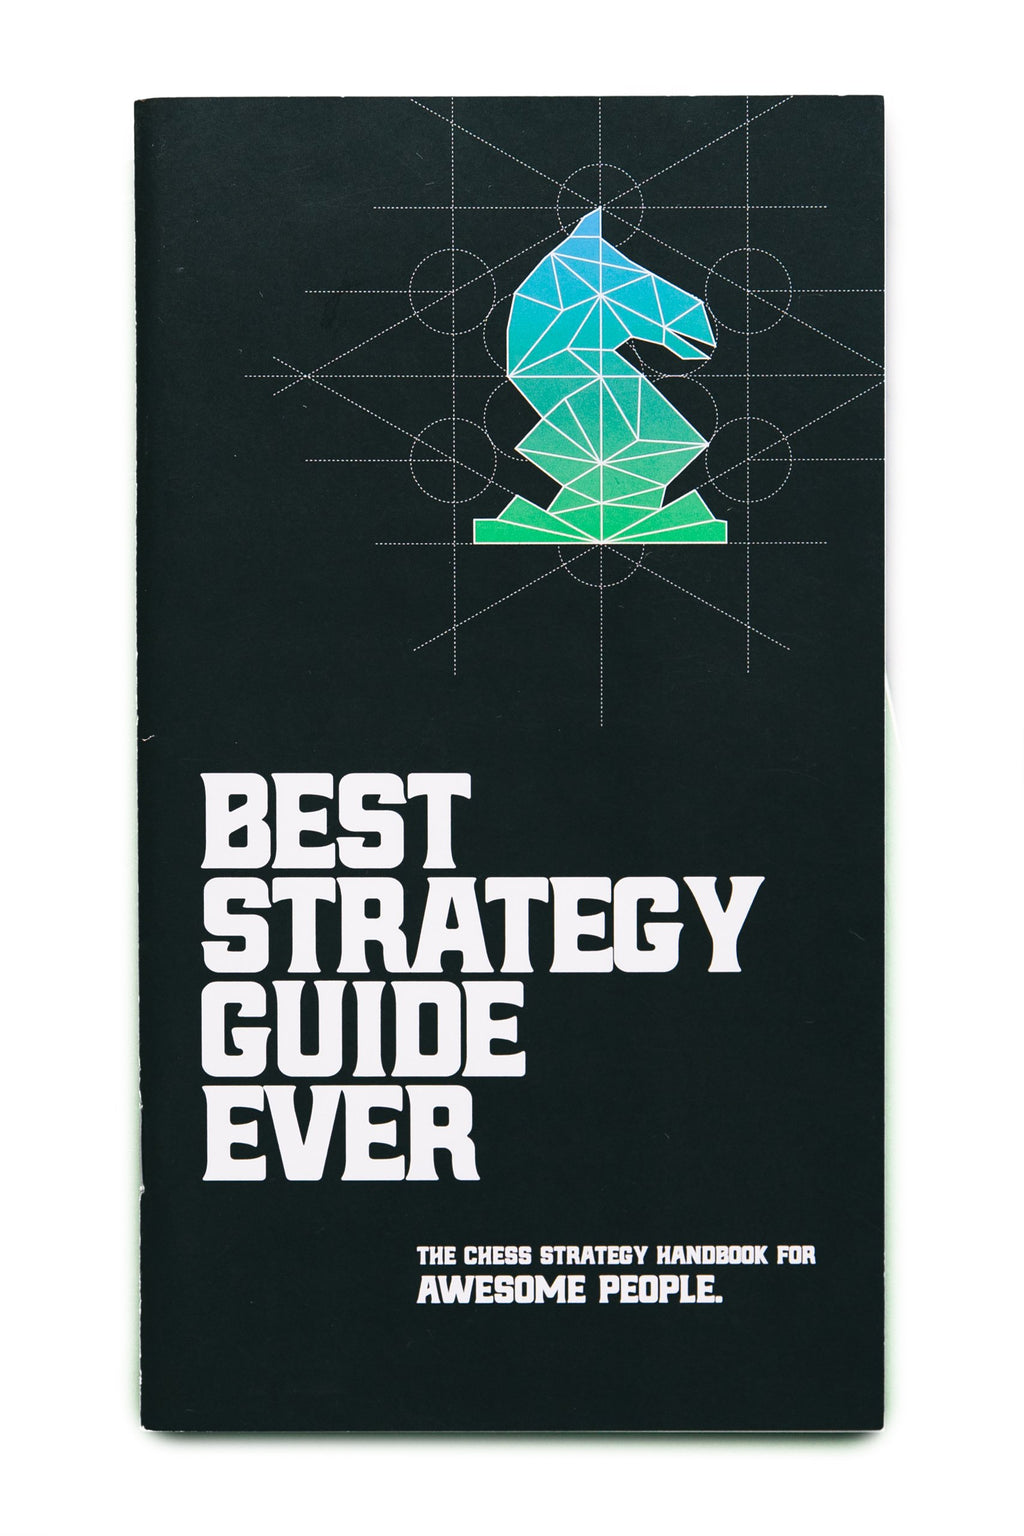 The Best Strategy Guide Ever